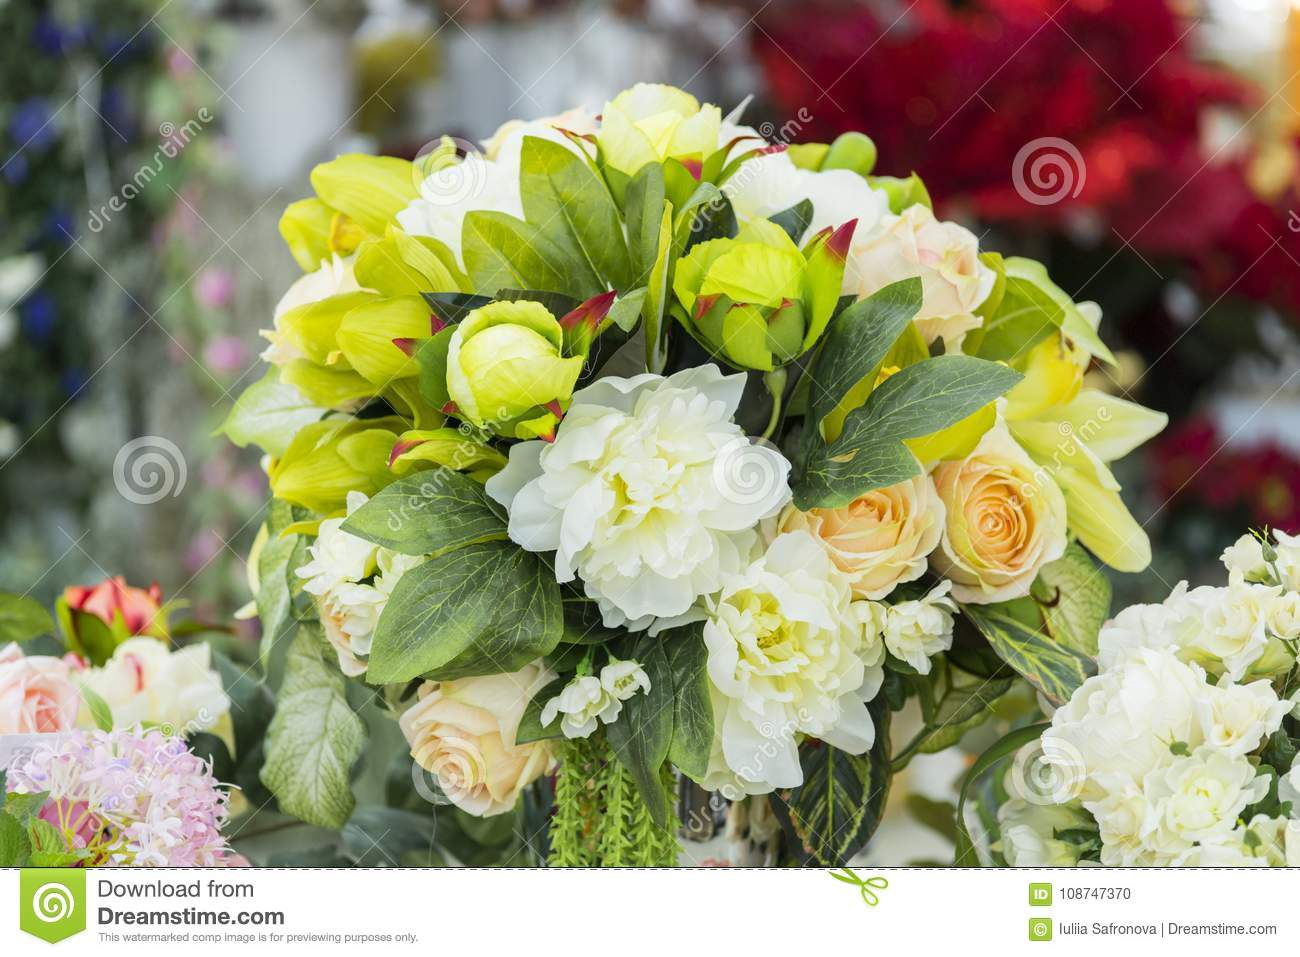 Artificial Flowers In A Vase Large Bouquet Stock Photo Image Of Bouquet Fake 108747370